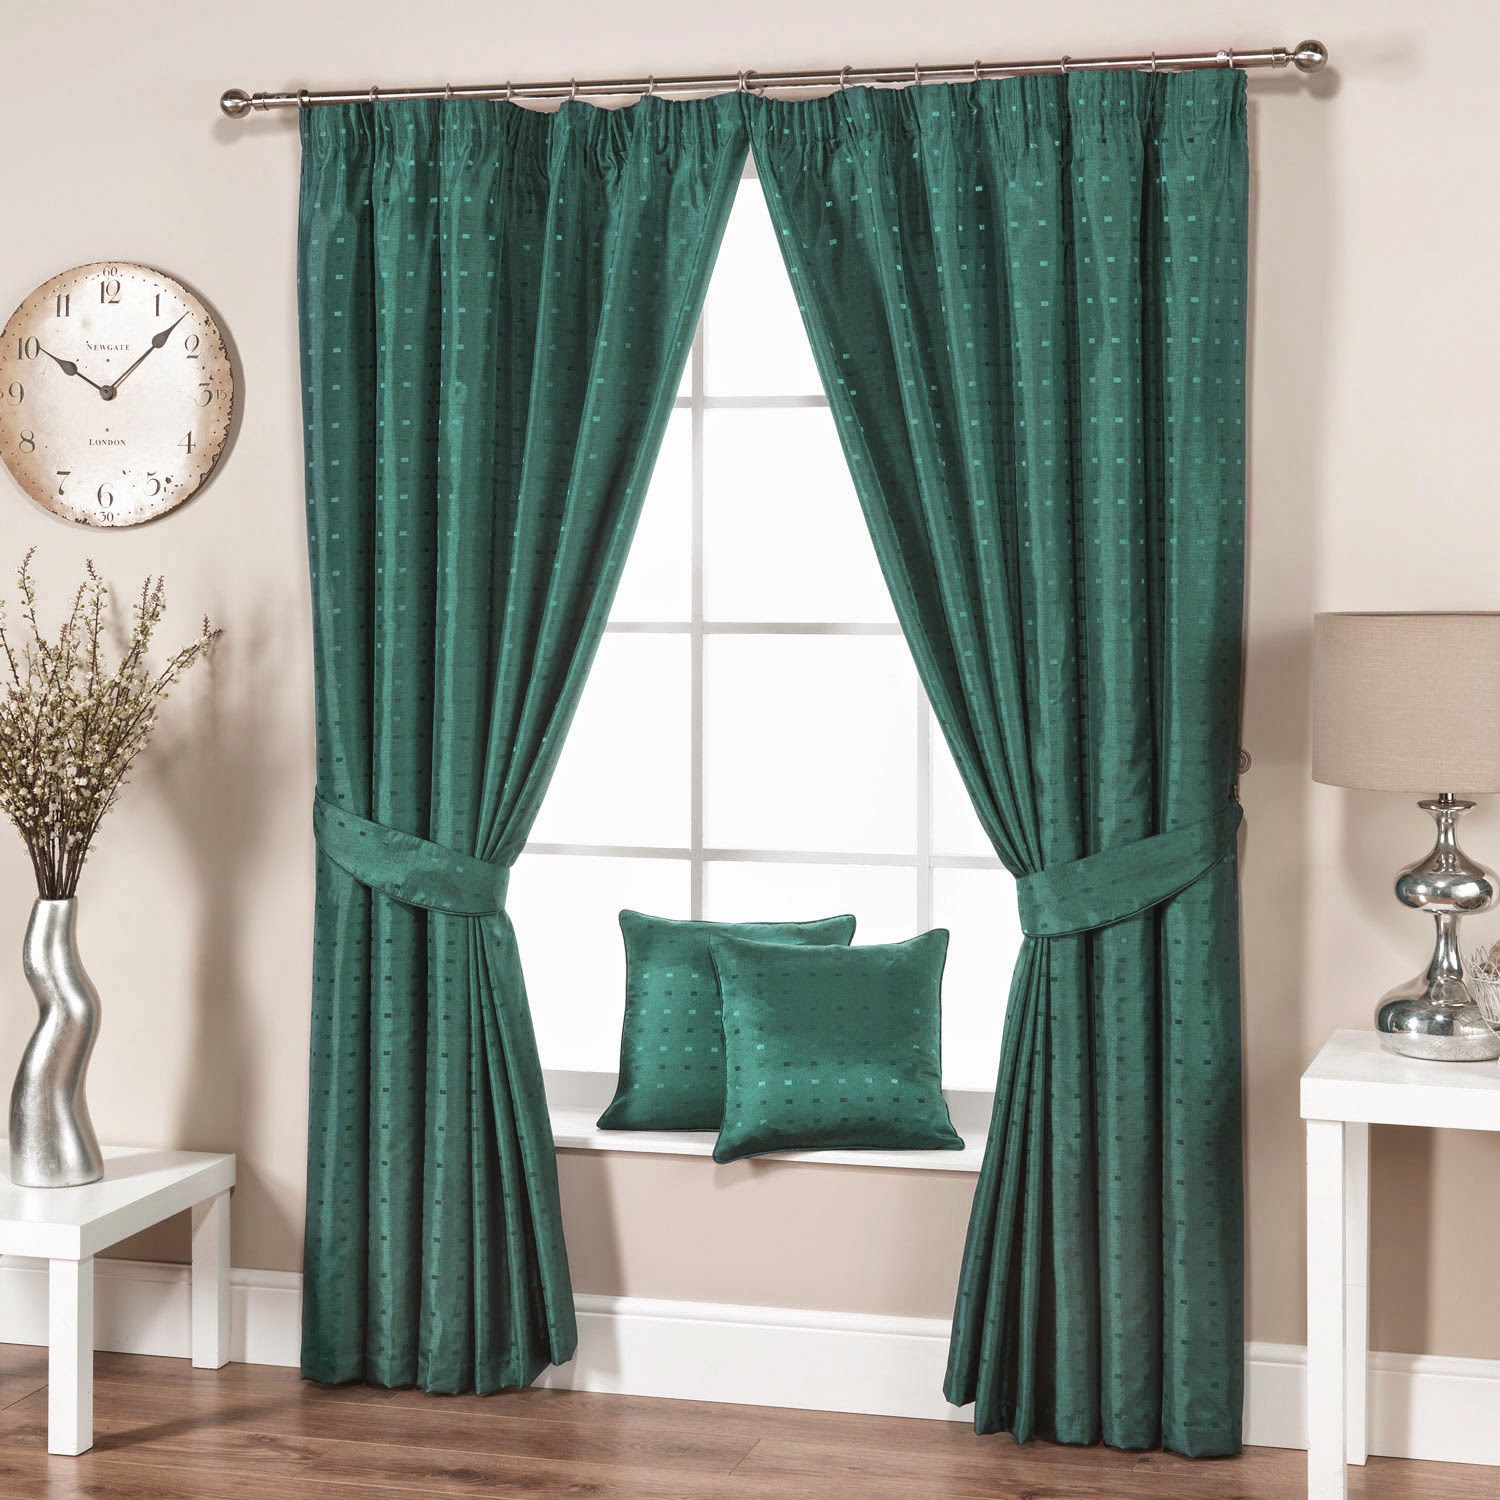 Green living room curtains for modern interior for Living room curtains